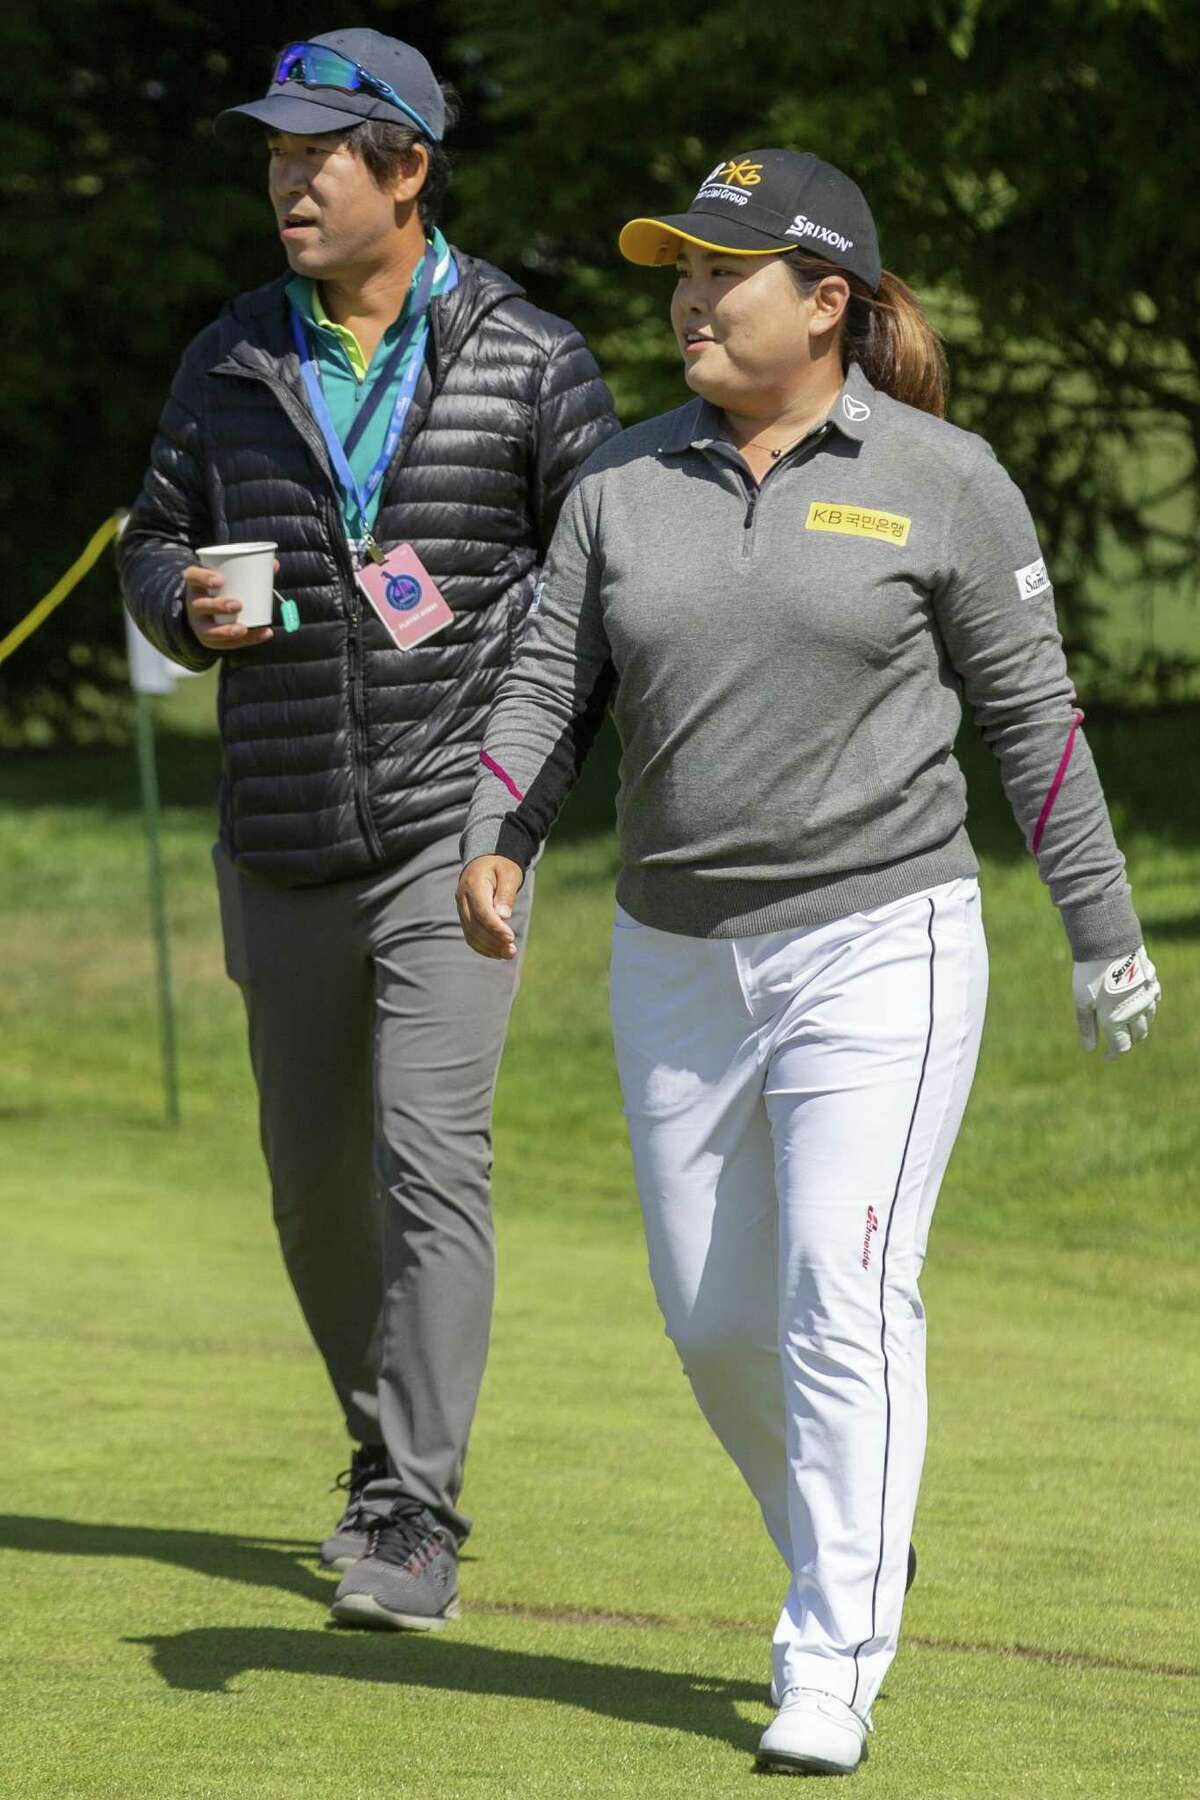 Inbee Park on the driving range at Lake Merced Golf Club on Wednesday, May 1, 2019, in San Francisco, Calif.